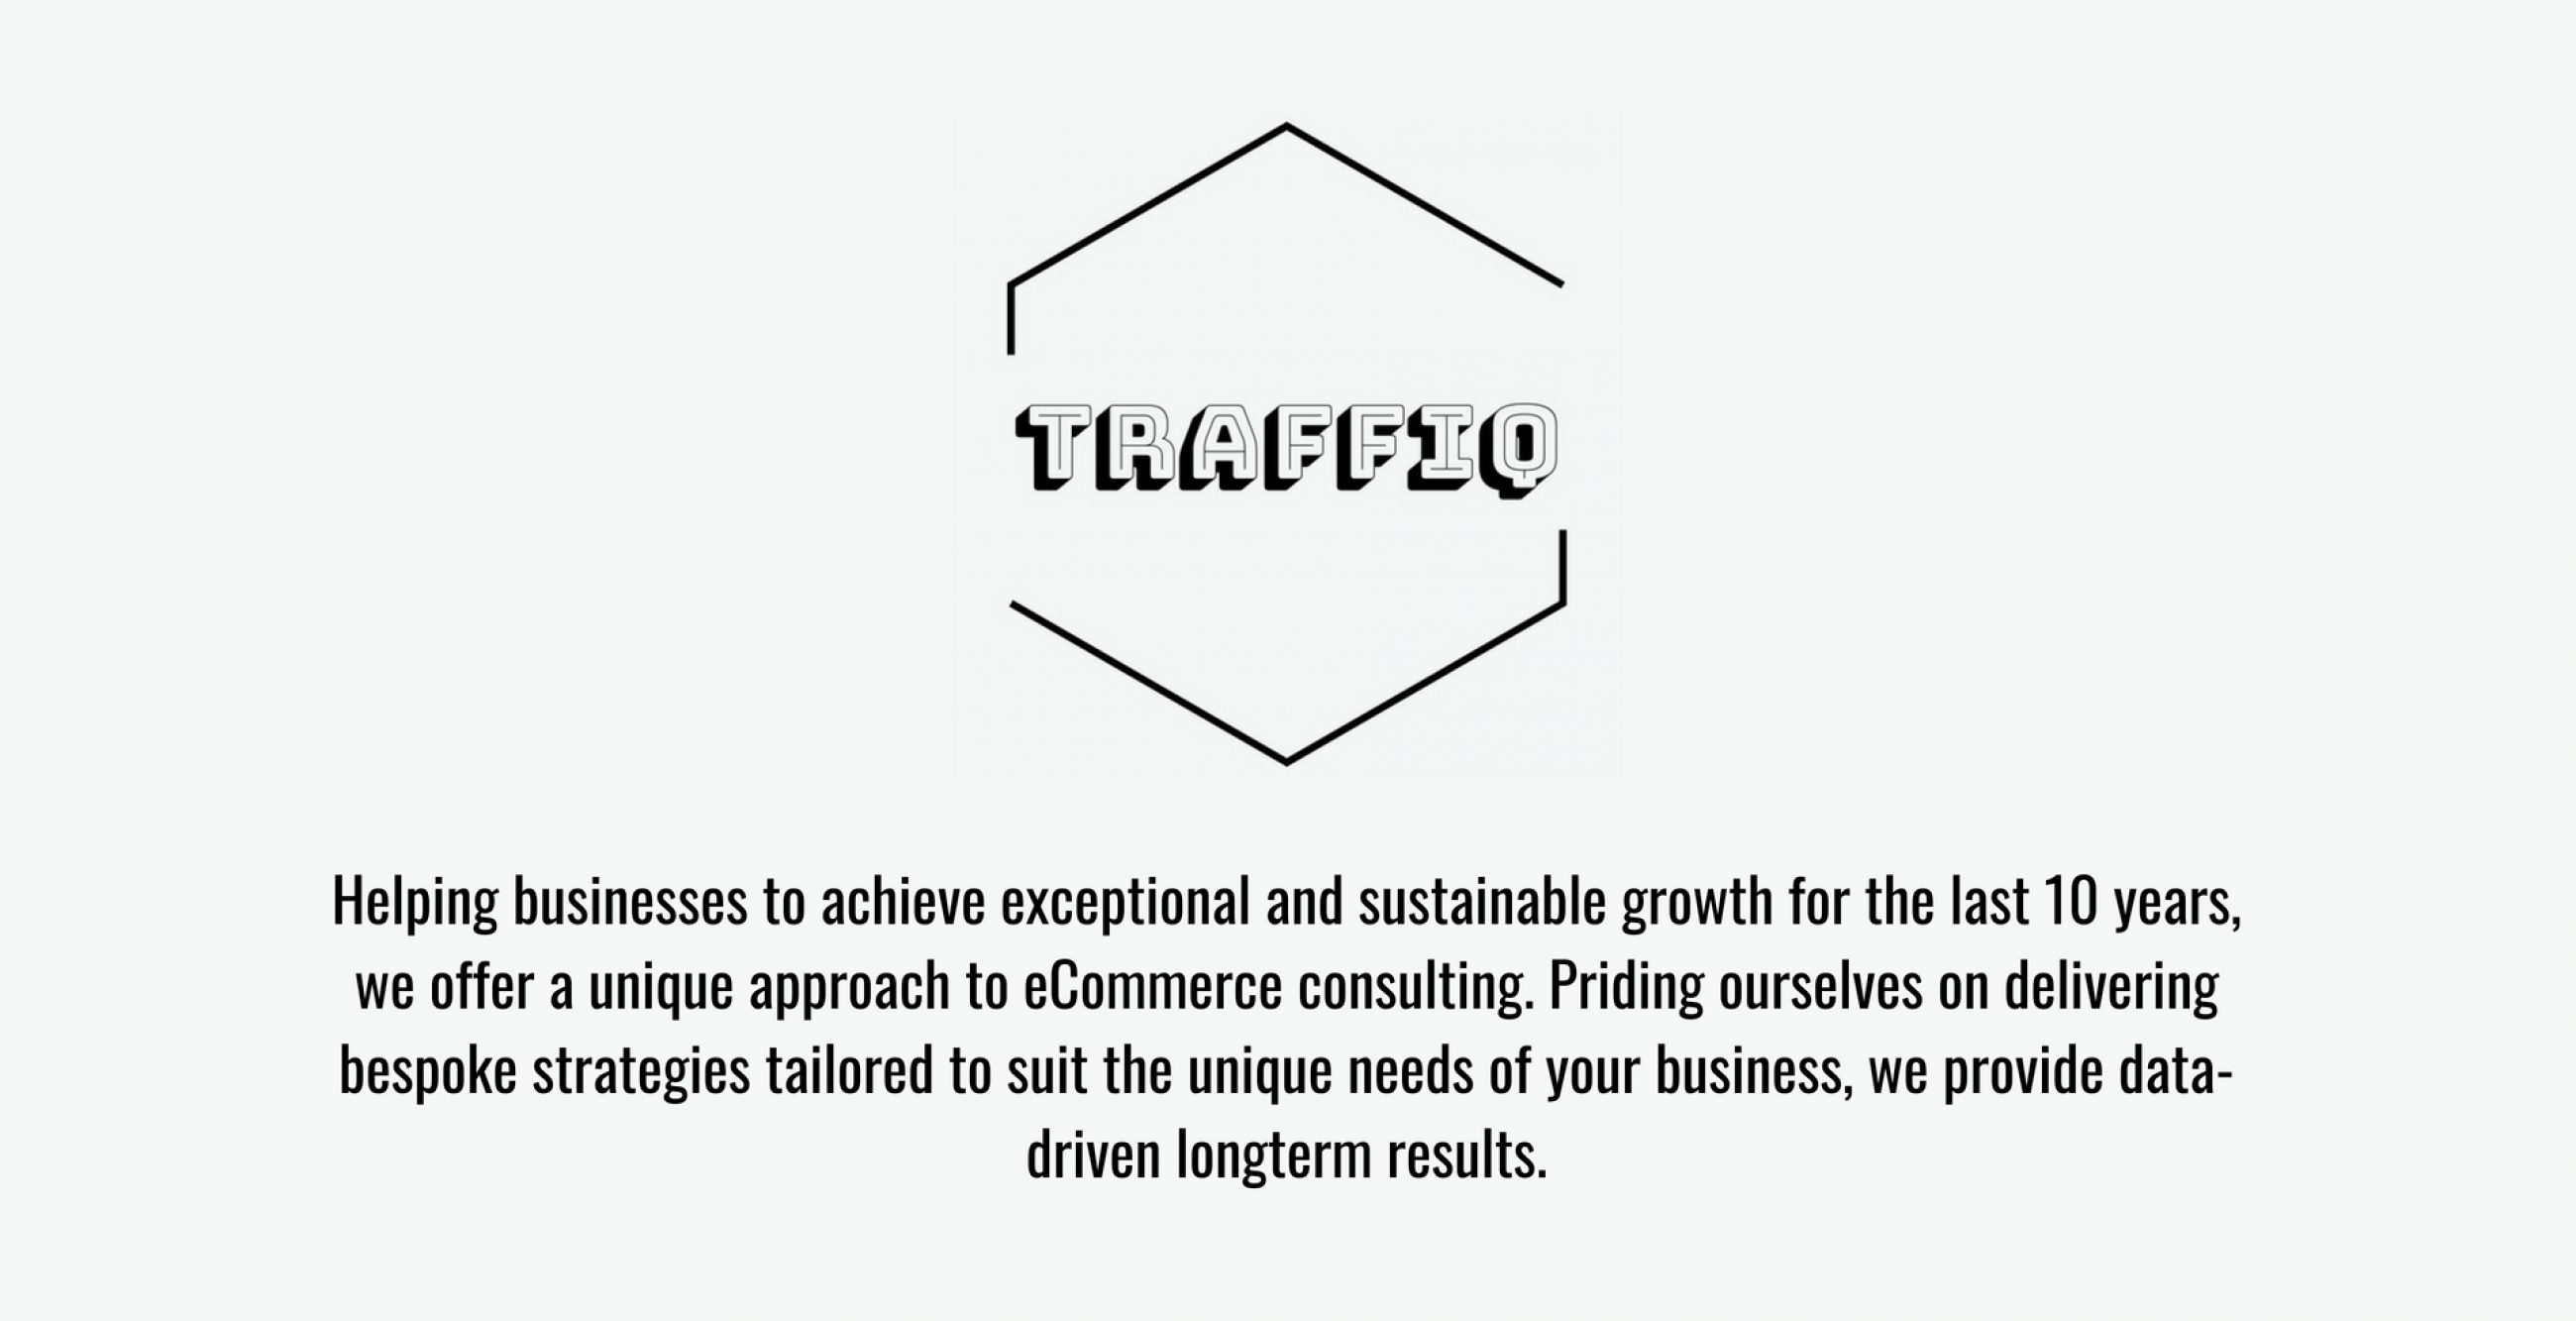 cropped-brand-building-digital-strategy-ecommerce-expertise-7.jpg